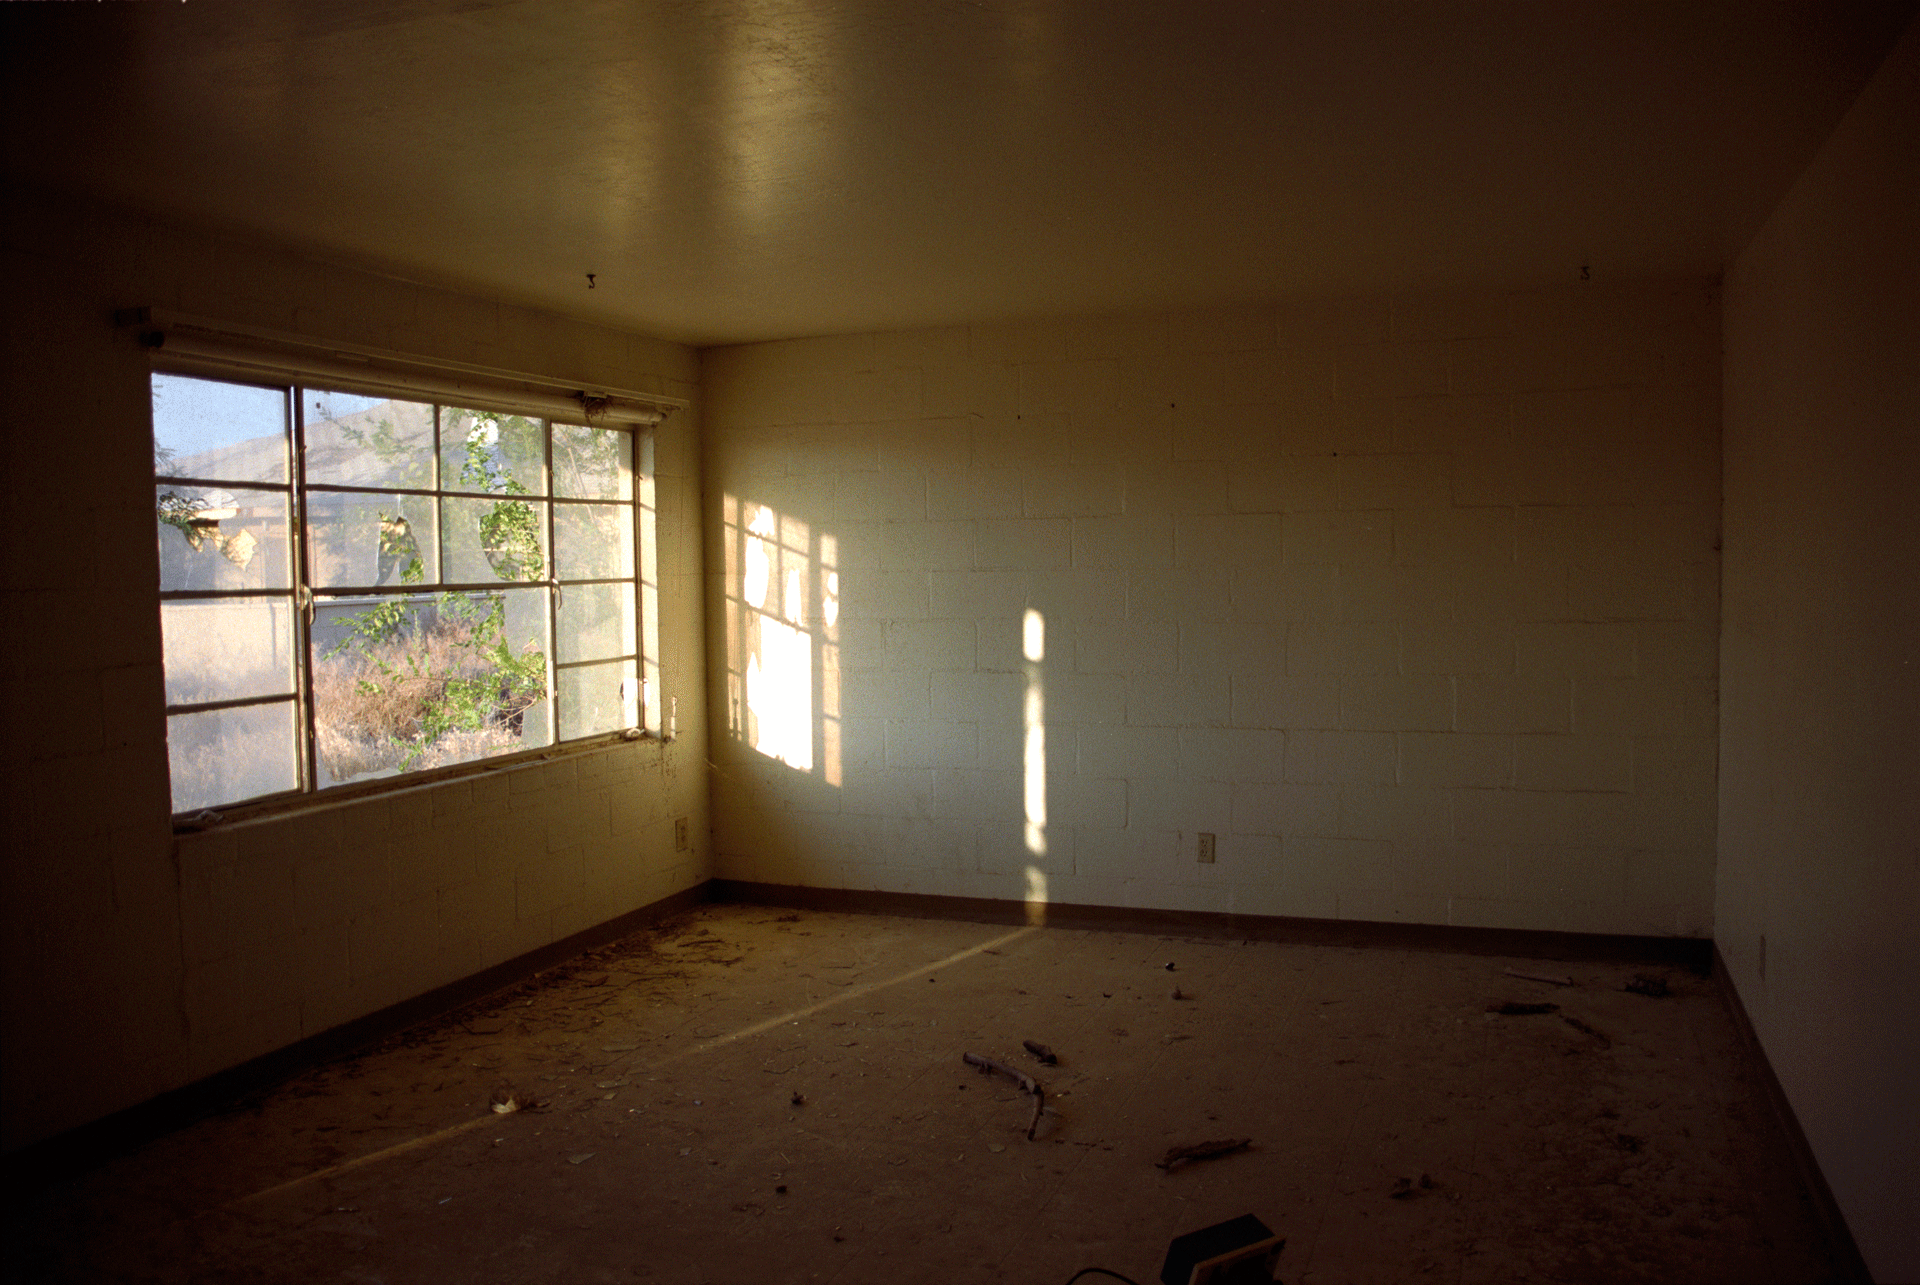 Decommissioned (Living Room)